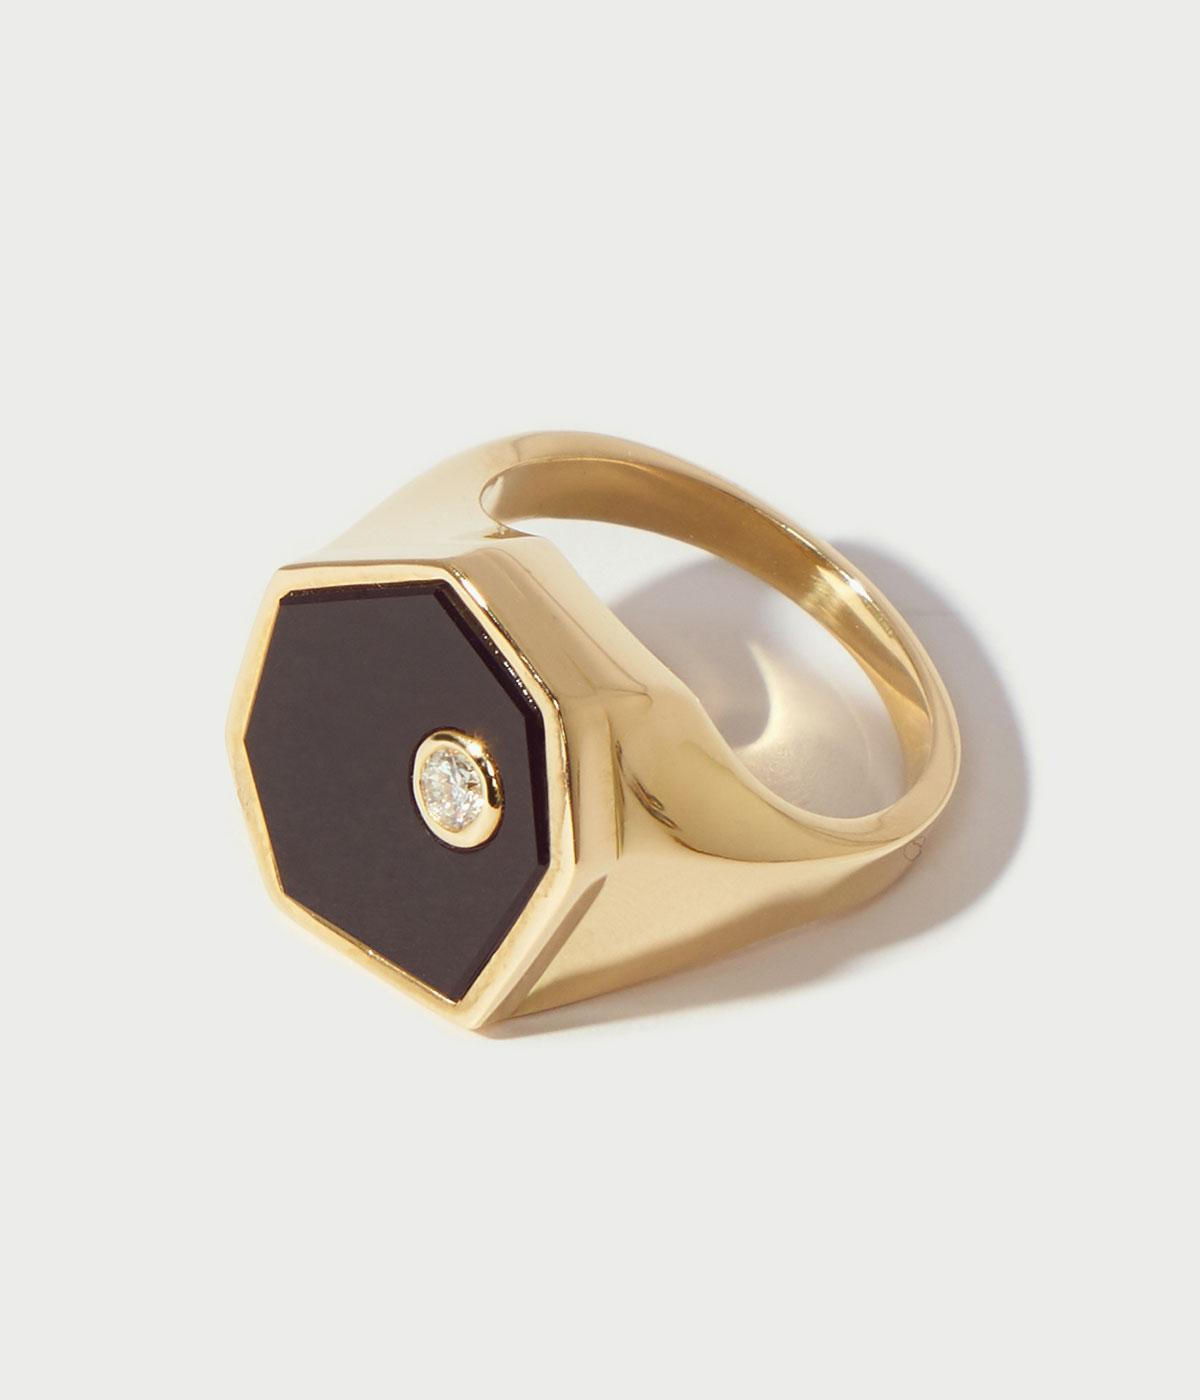 onyx and gold signet ring with a diamond